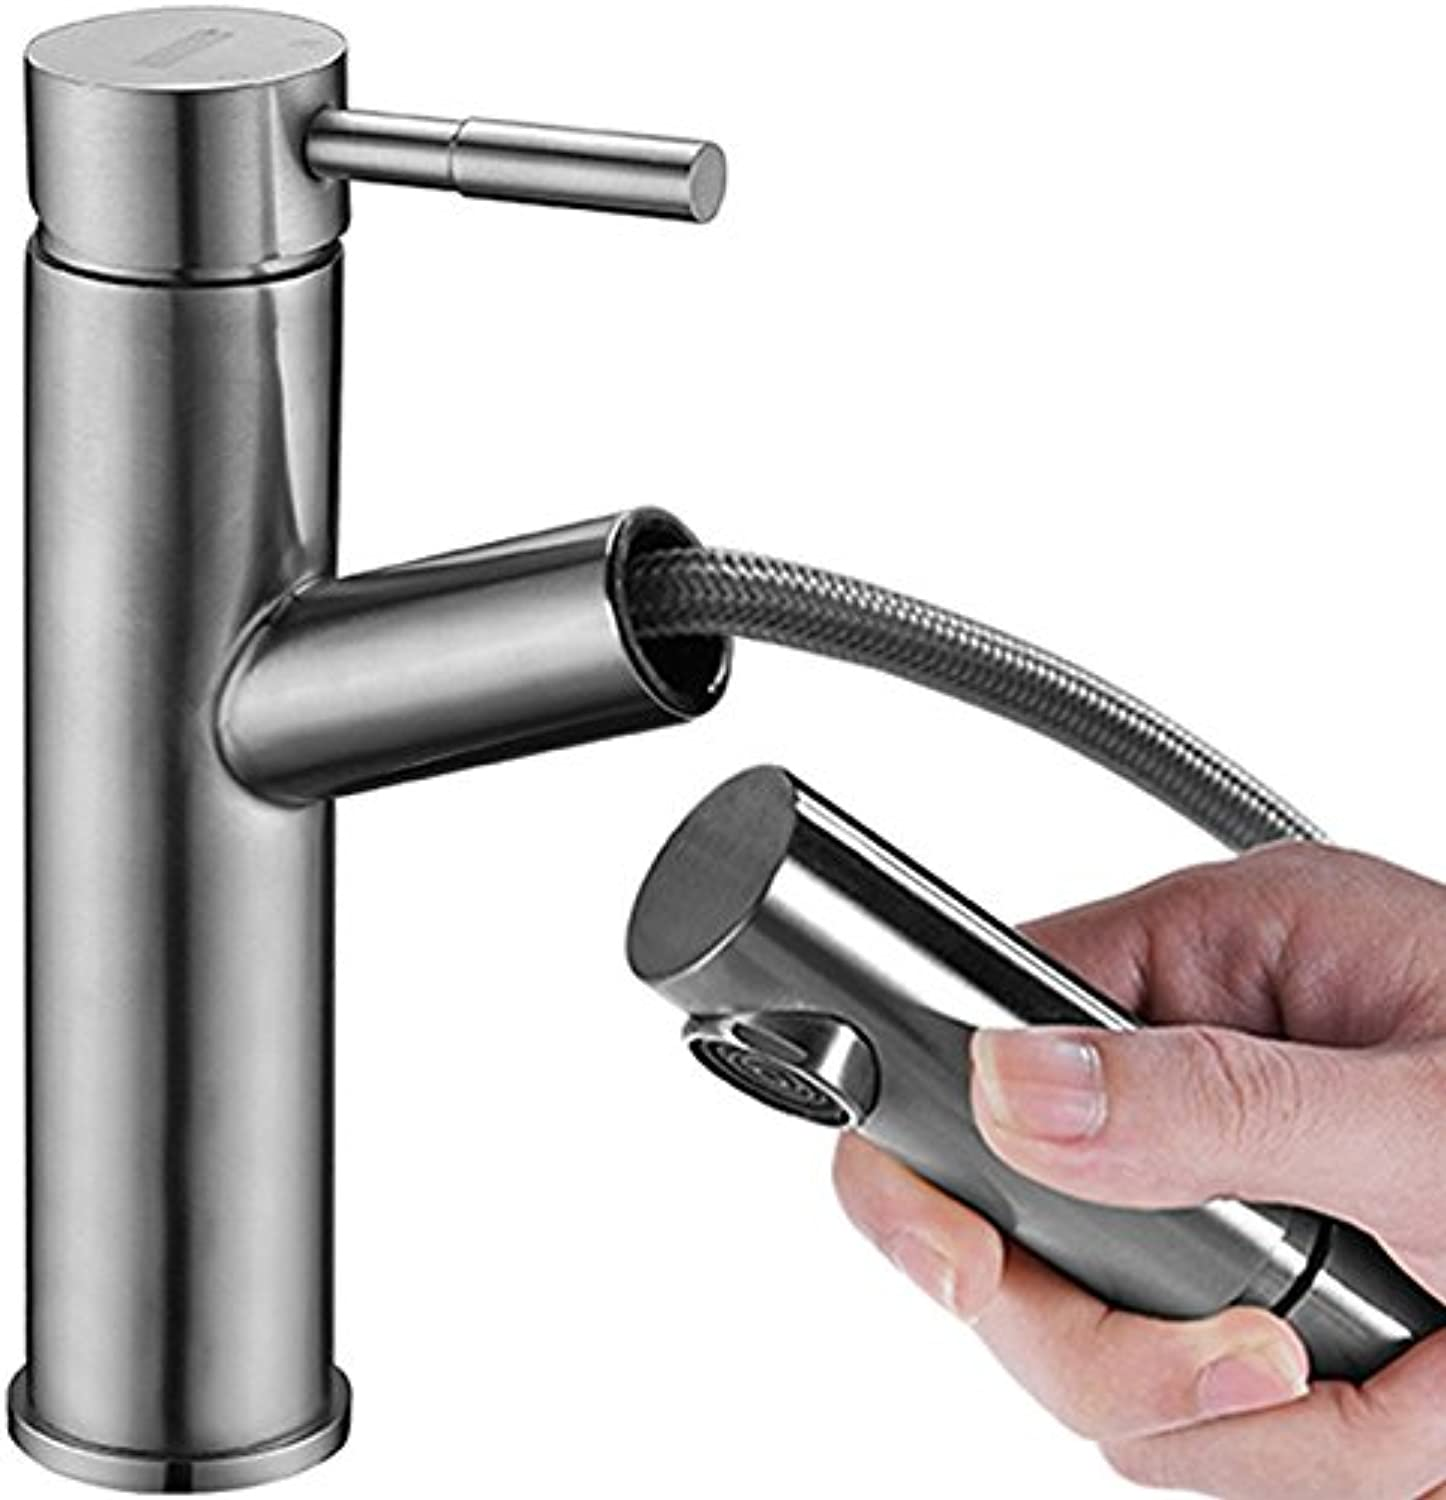 Bijjaladeva Antique Bathroom Sink Vessel Faucet Basin Mixer Tap 304 Stainless Steel Basin faucet hot and cold to pull-down faucet vanity bathroom cabinet Faucet